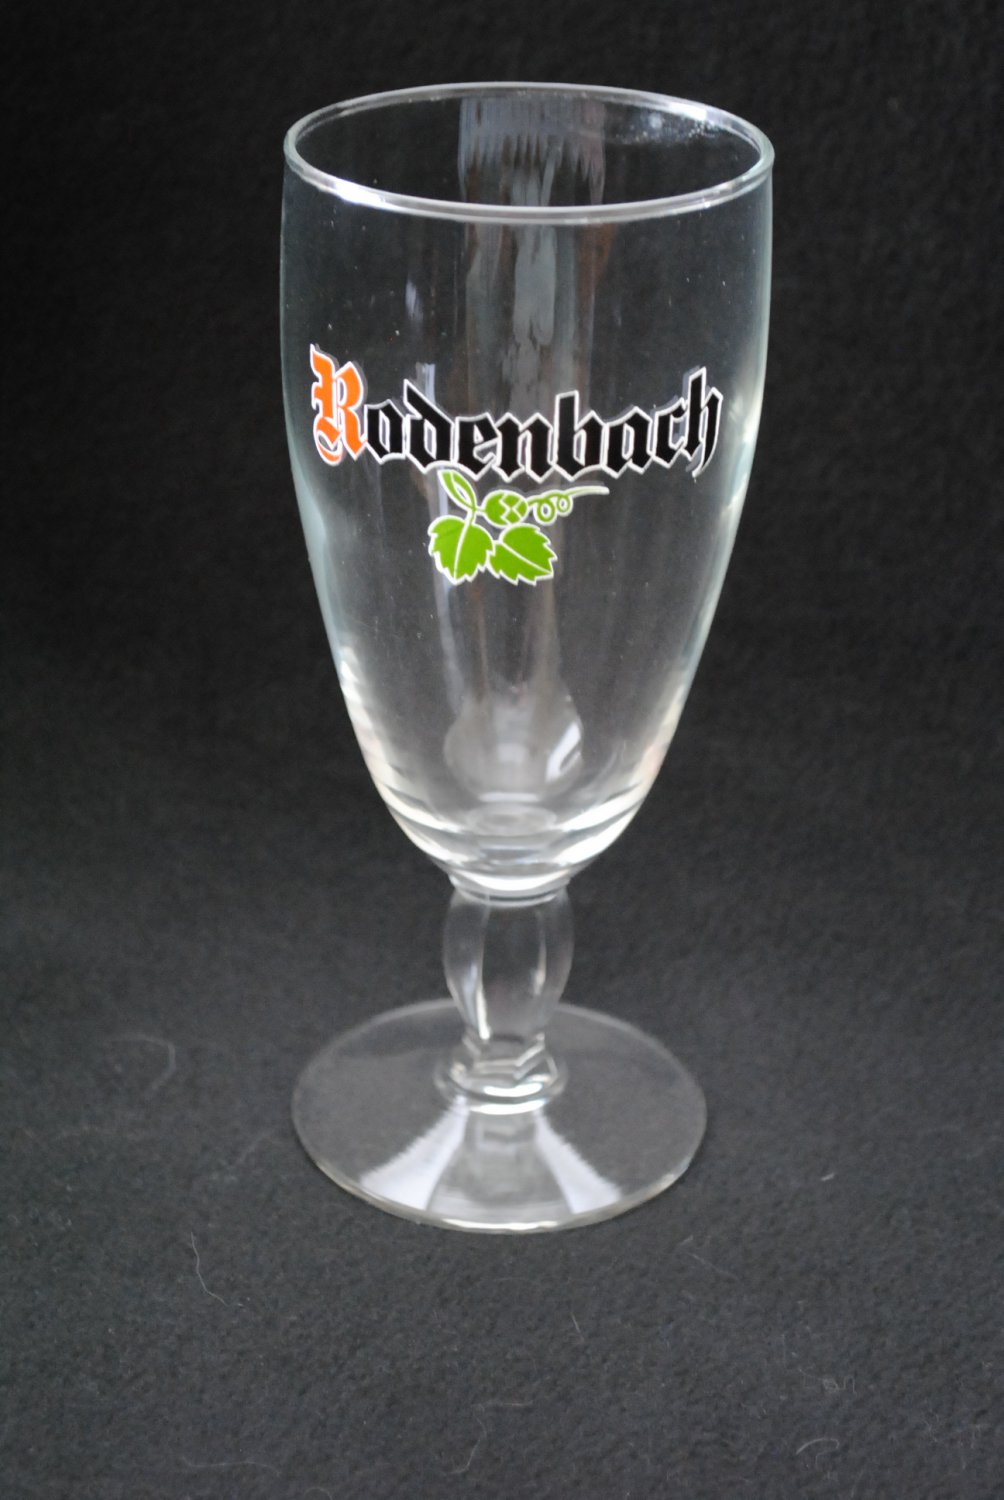 Rodenbach Belgian Beer Glasses, Set of 2